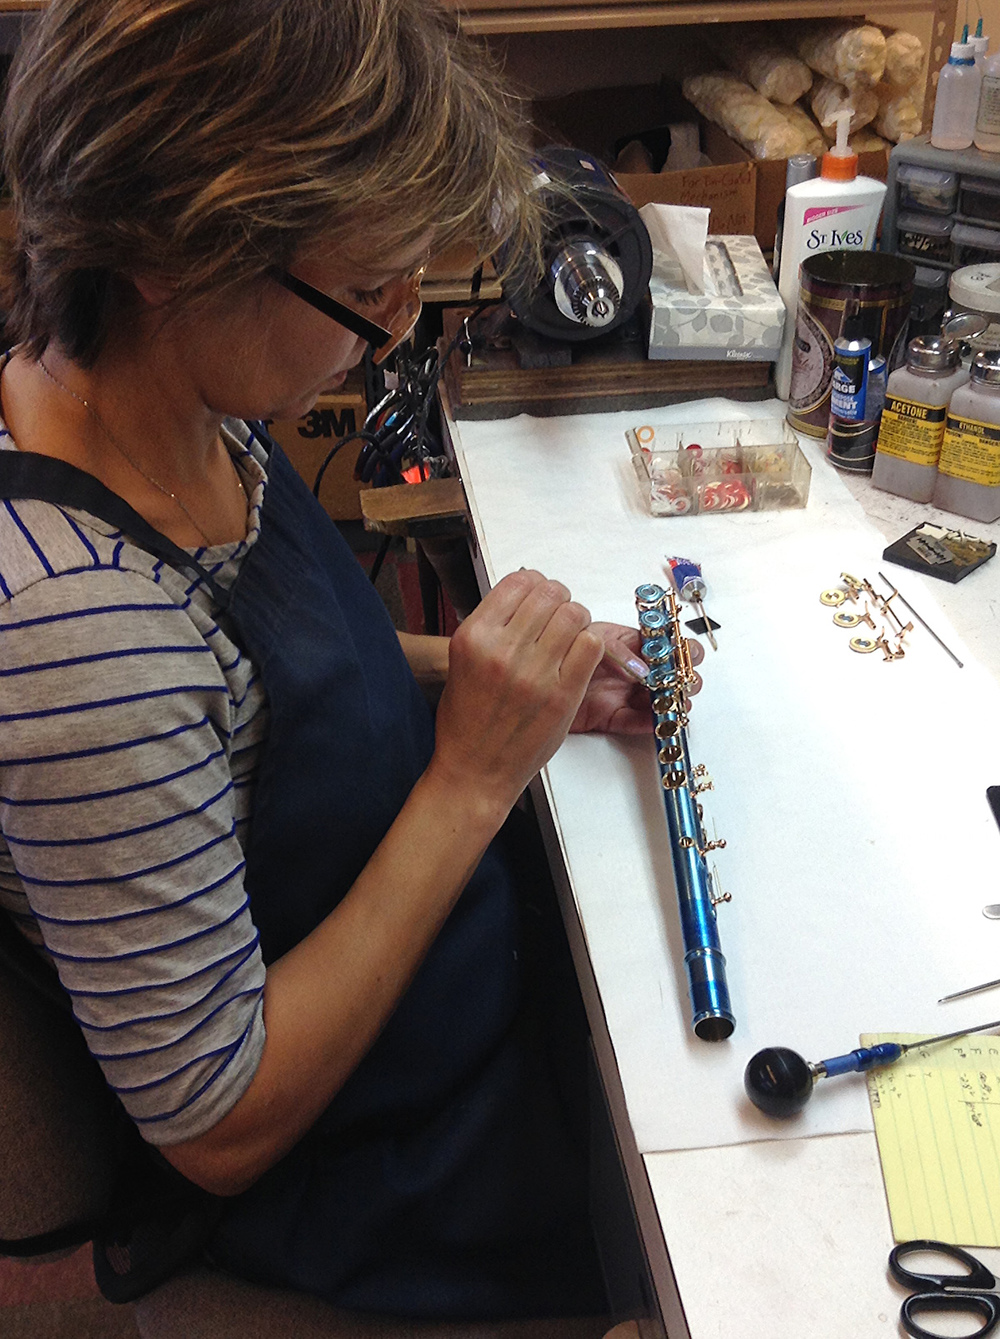 Galina at Powell, padding a flute with protective blue film